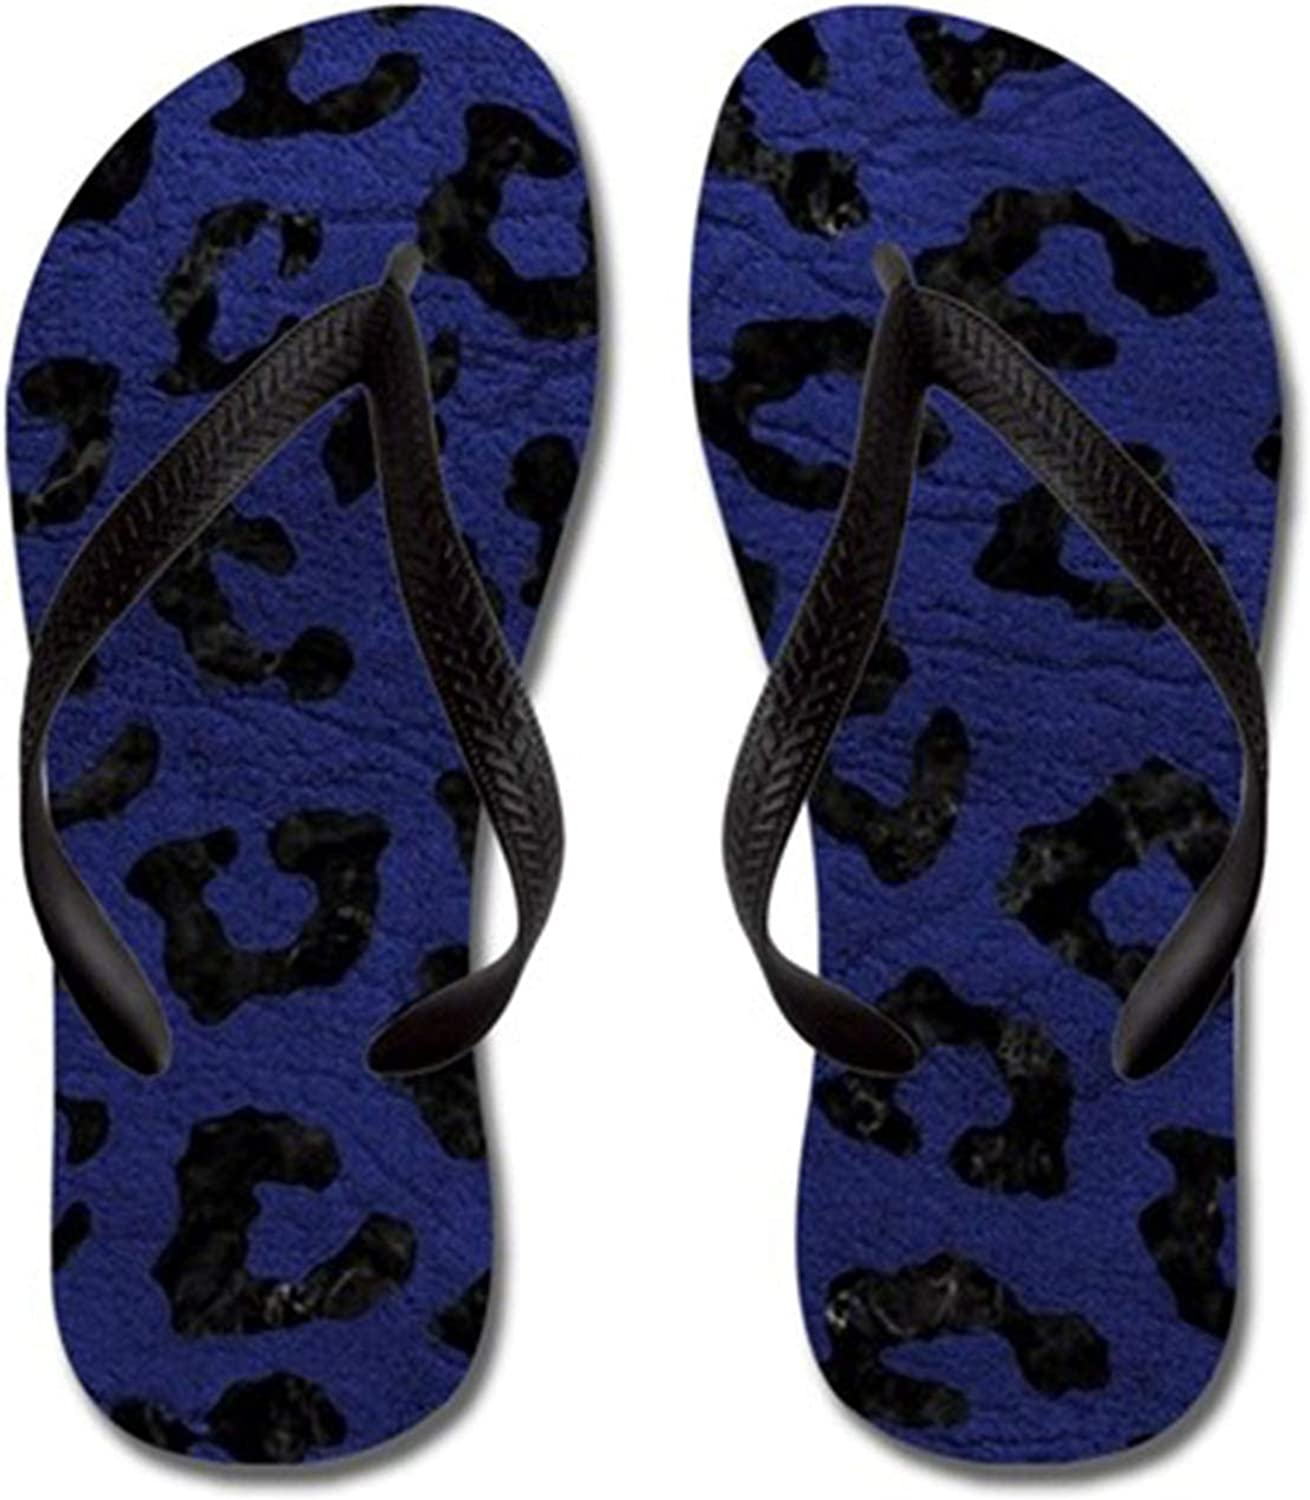 Mens Flip Flops Thong Sandals Flo Beach Summer Casual Limited price sale Women Max 59% OFF